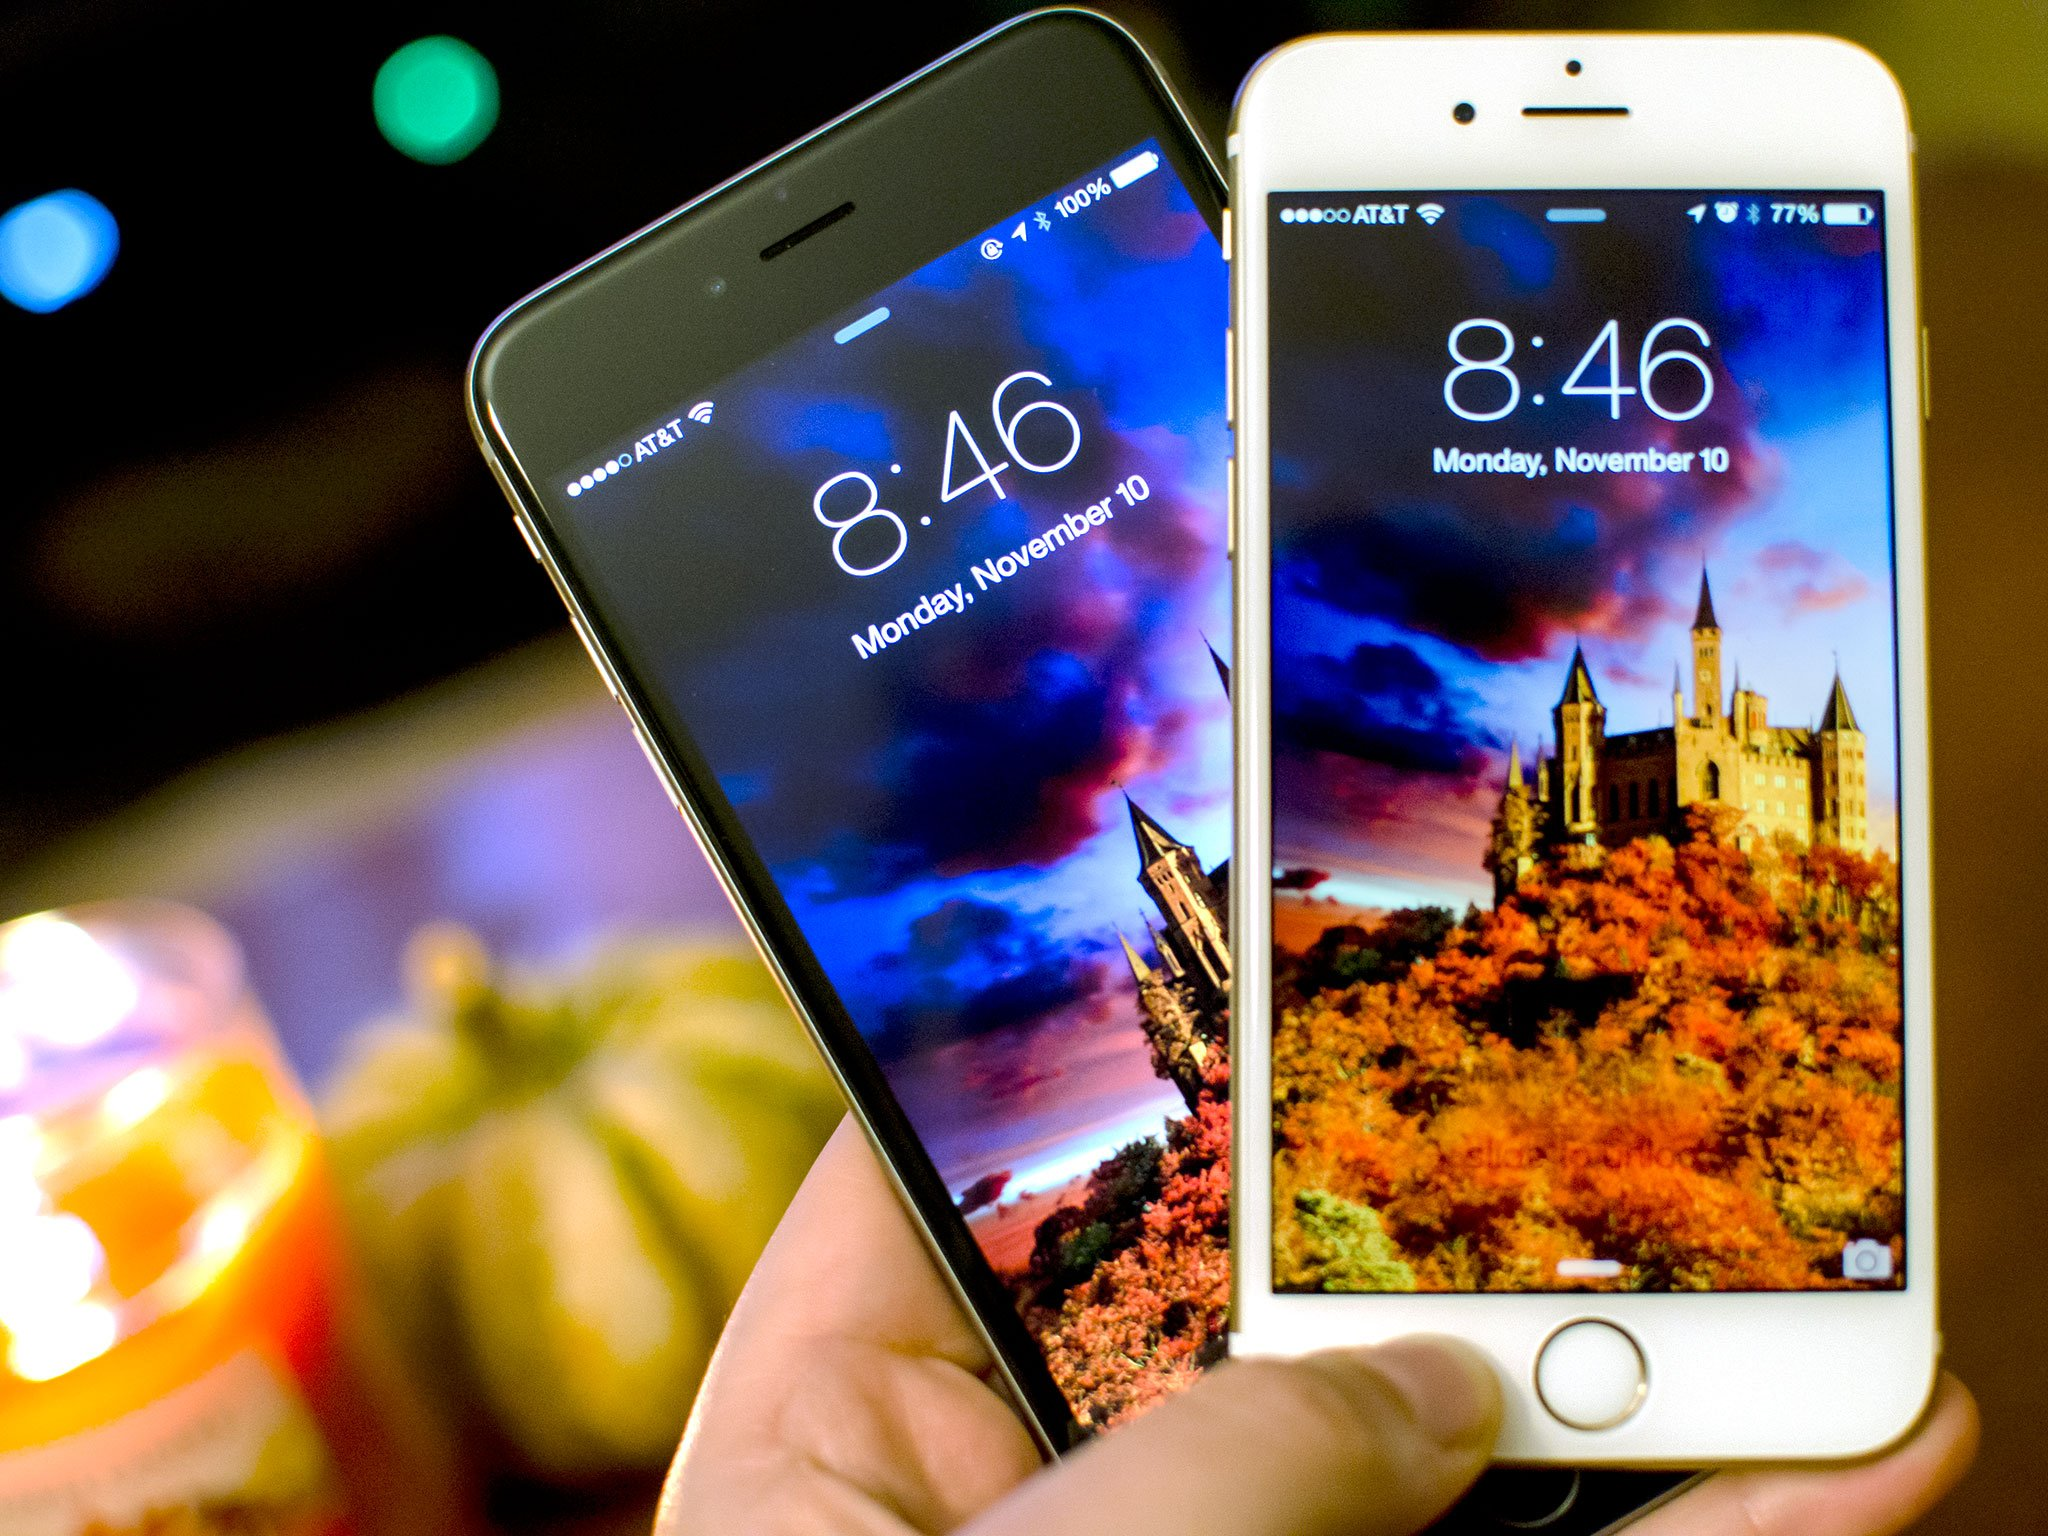 How To Make Your Own Live Wallpaper Iphone X Best Wallpaper Apps For Iphone 6 And Iphone 6 Plus Imore